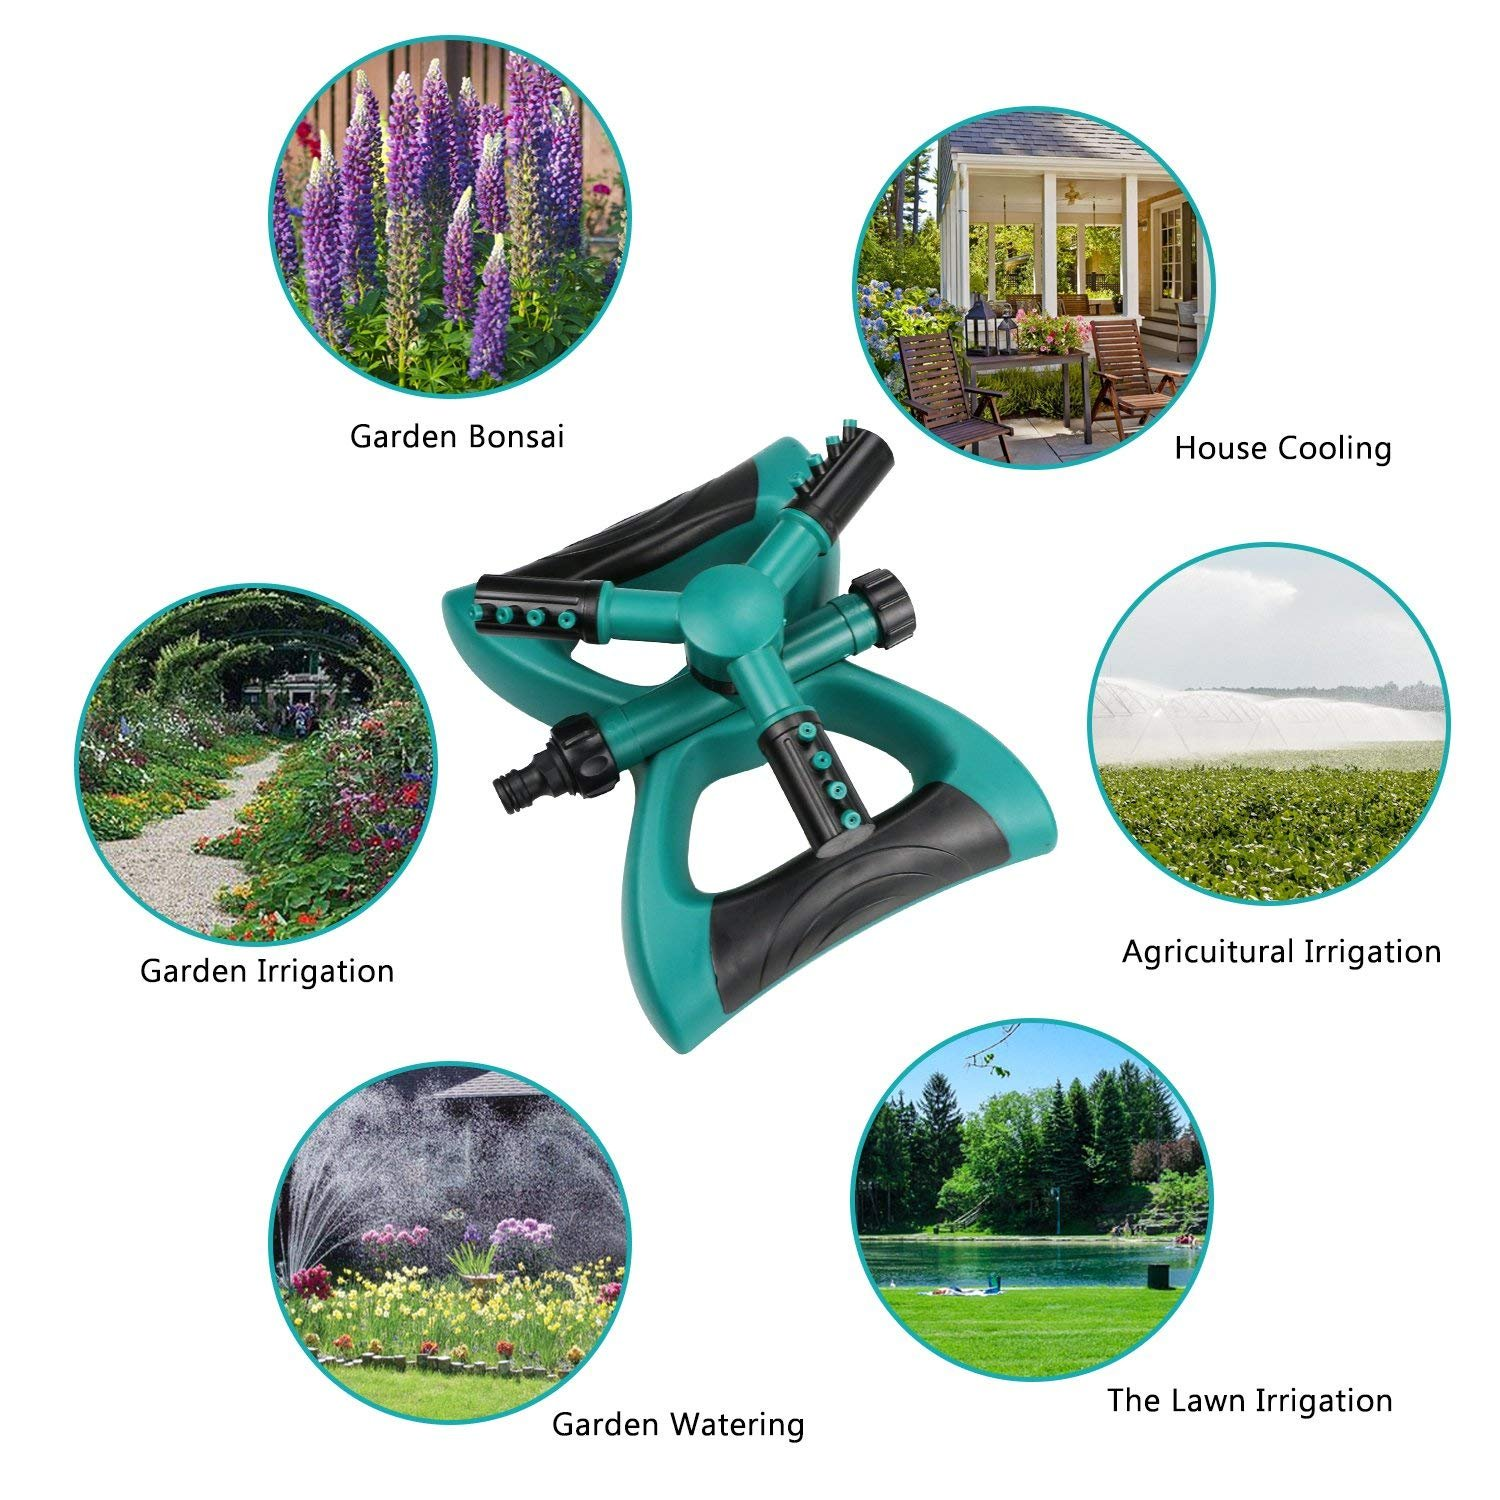 CHHUI Garden Sprinkler Lawn Water Sprinklers Including Hose Connector, 360 Degree Automatic Rotating Adjustable Nozzle Irrigation System